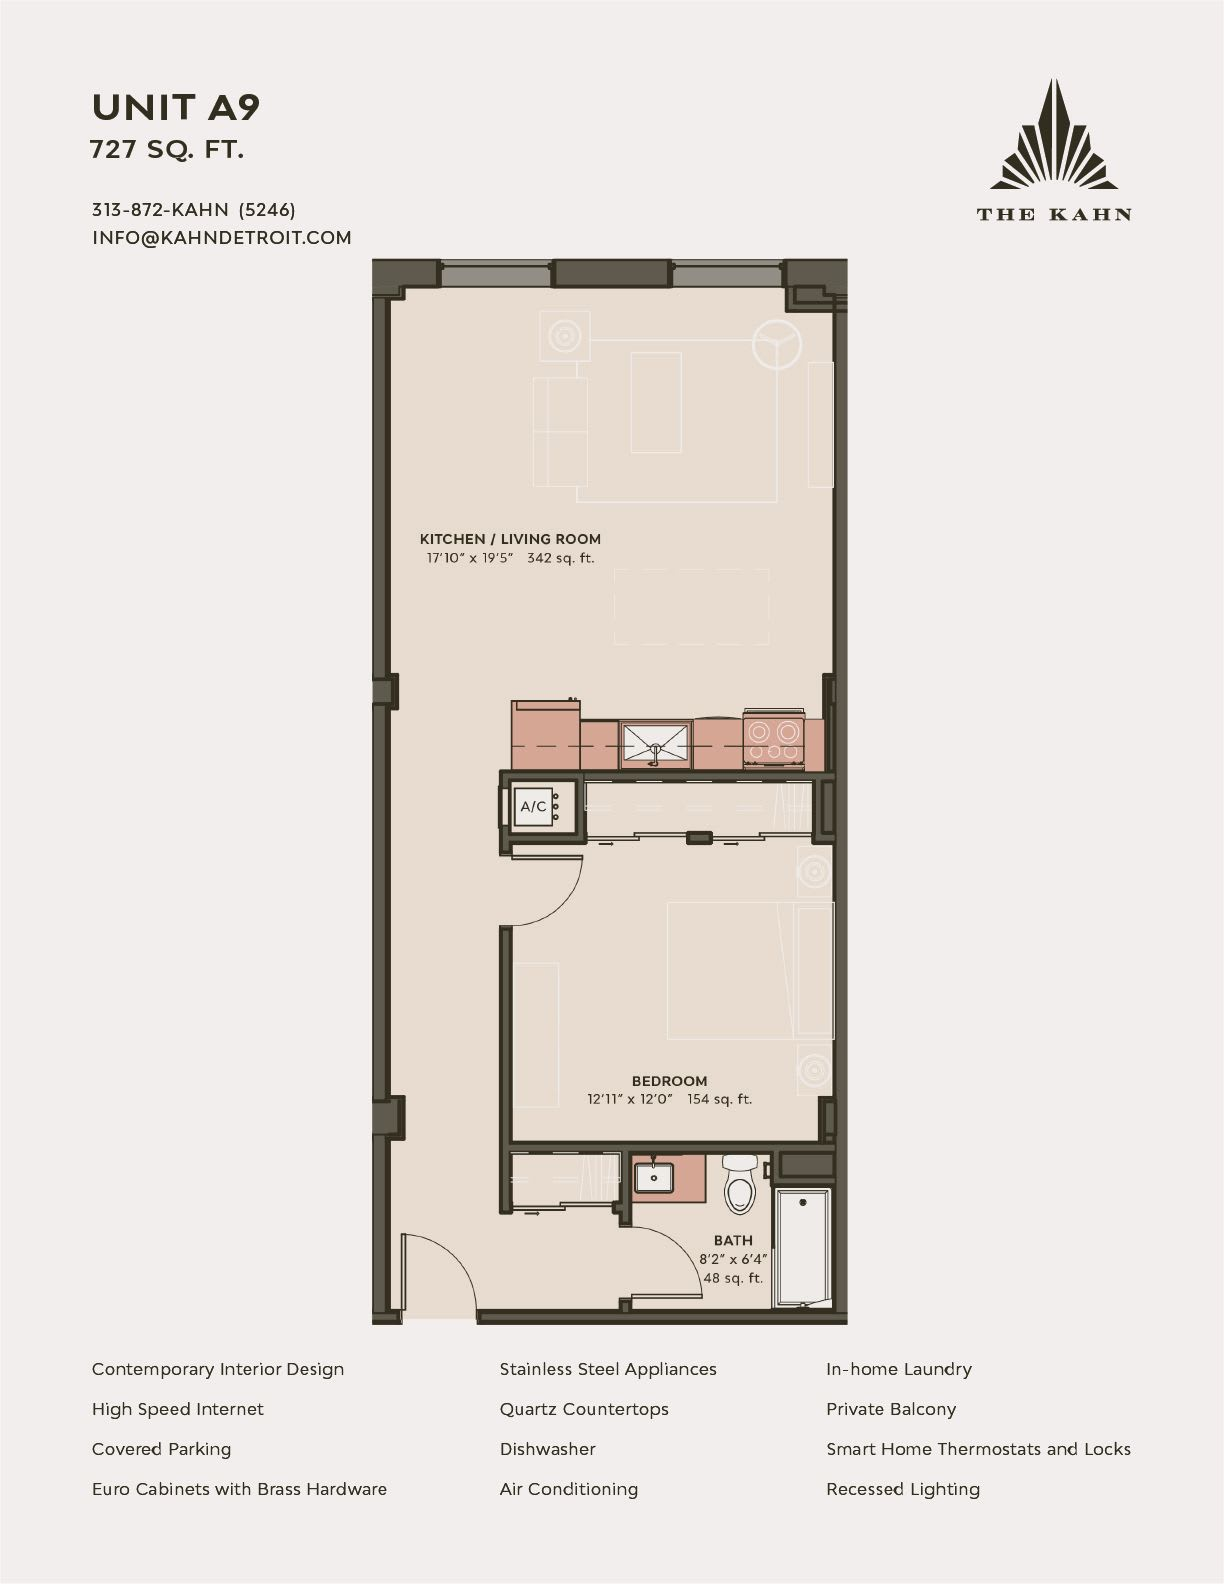 A9 floor plan image at The Kahn in Detroit, Michigan